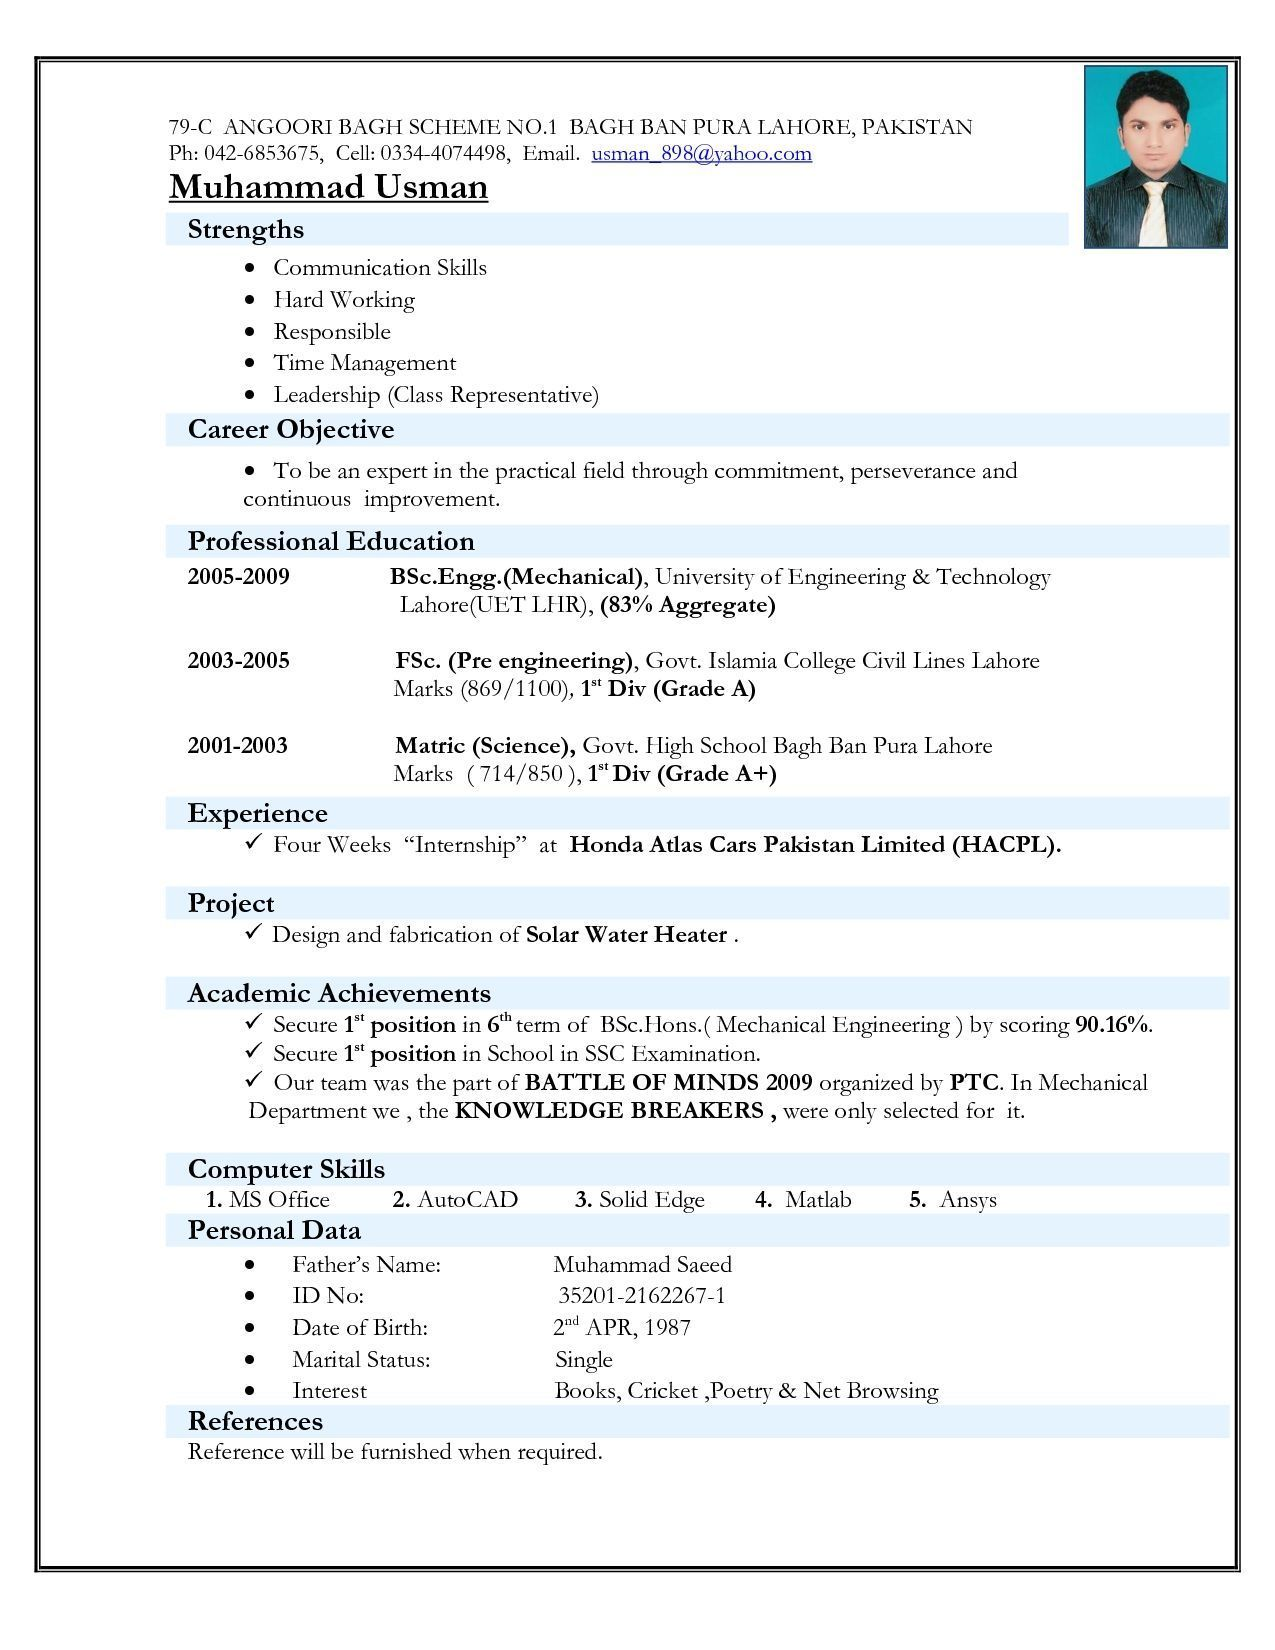 Top 5 Resume Formats For Freshers Resume Format Download Job Resume Format Best Resume Format